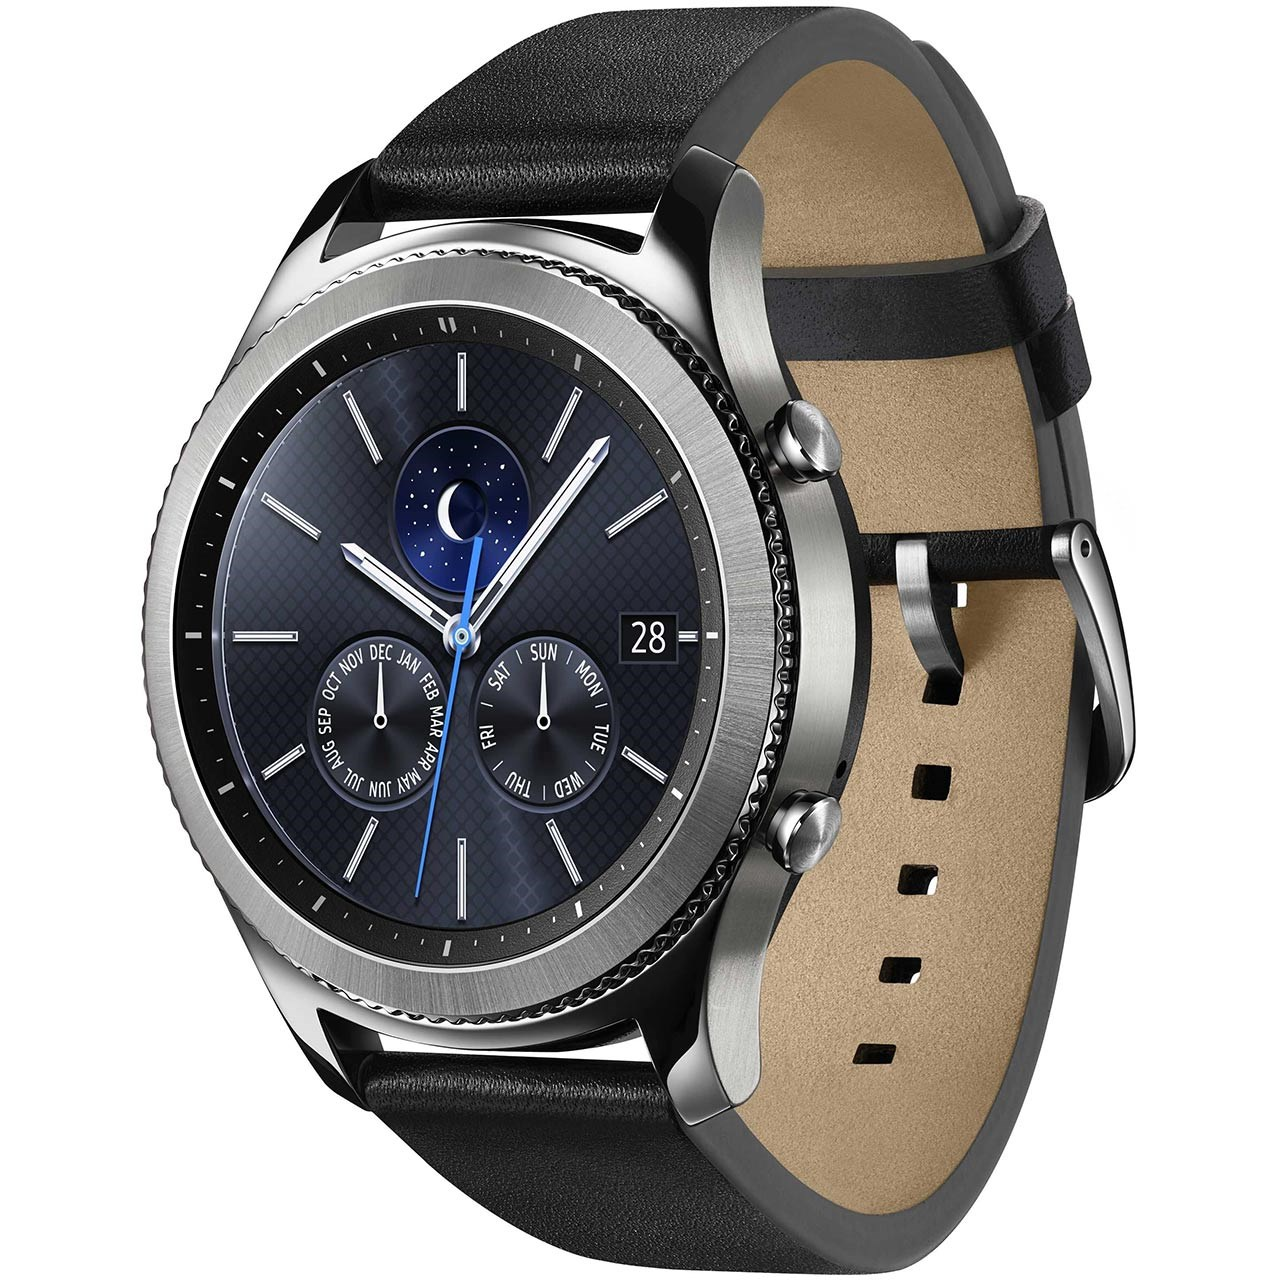 خرید ساعت هوشمند سامسونگ مدل Gear S3 Classic SM-R770 Black Leather